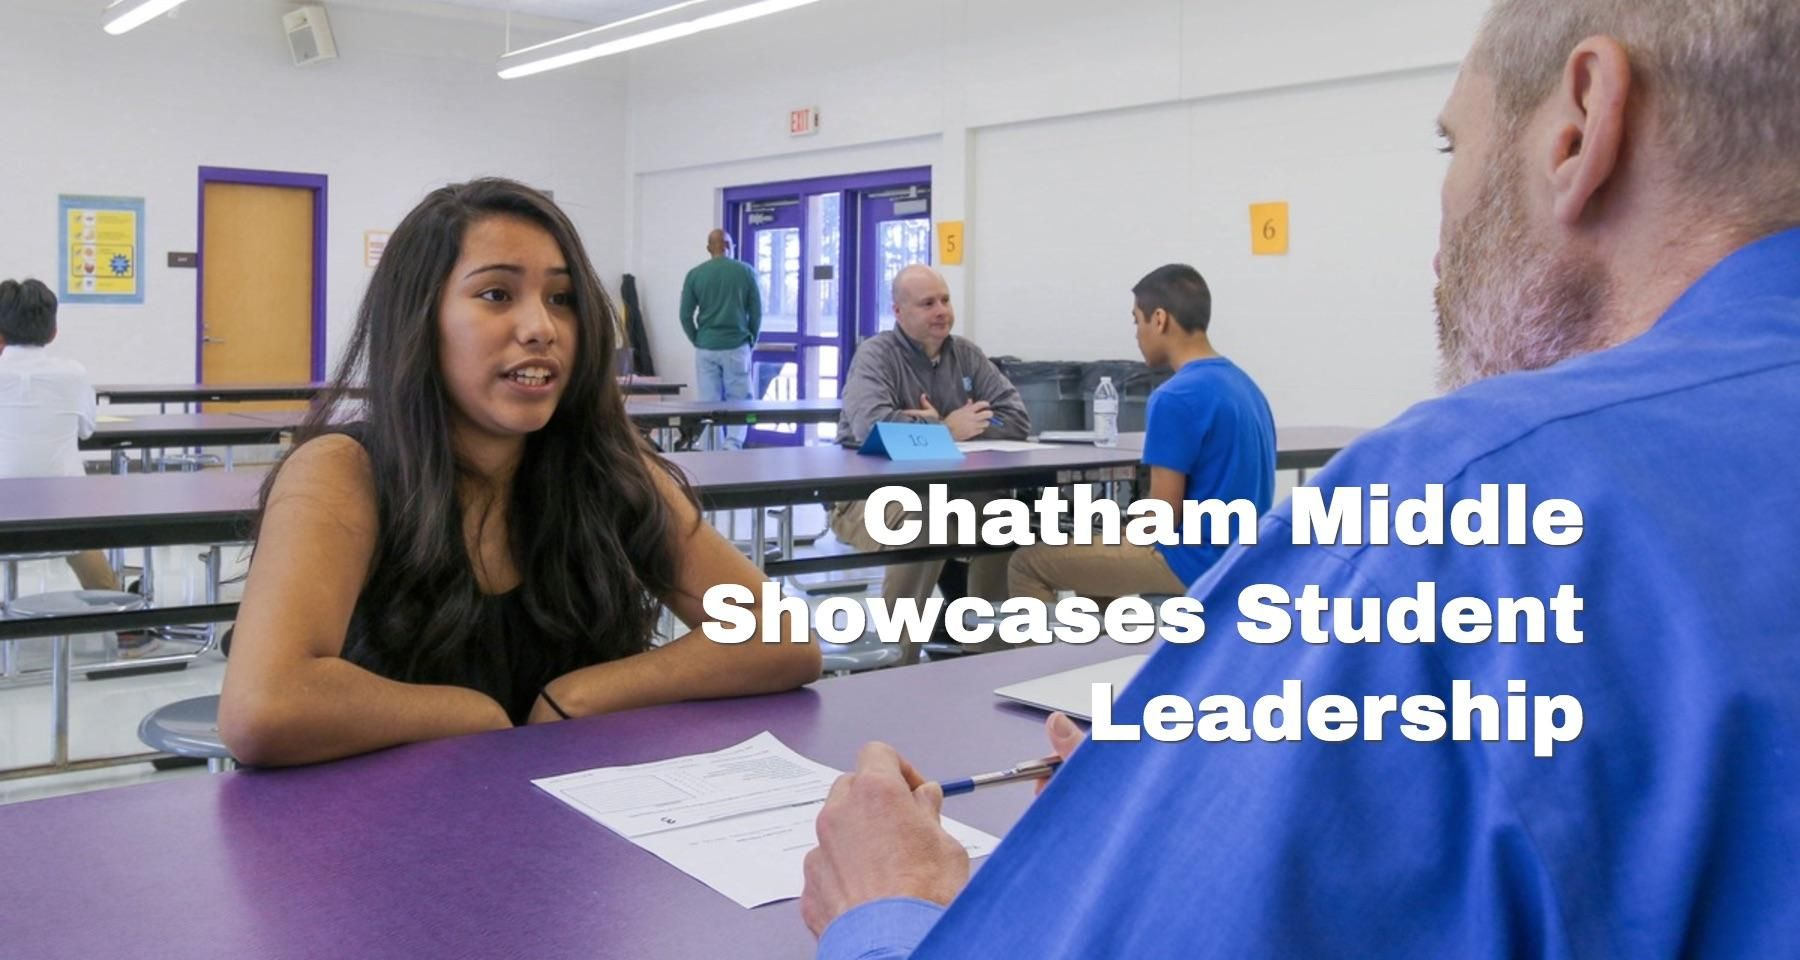 Real-world training for 'Future Leaders' at Chatham Middle